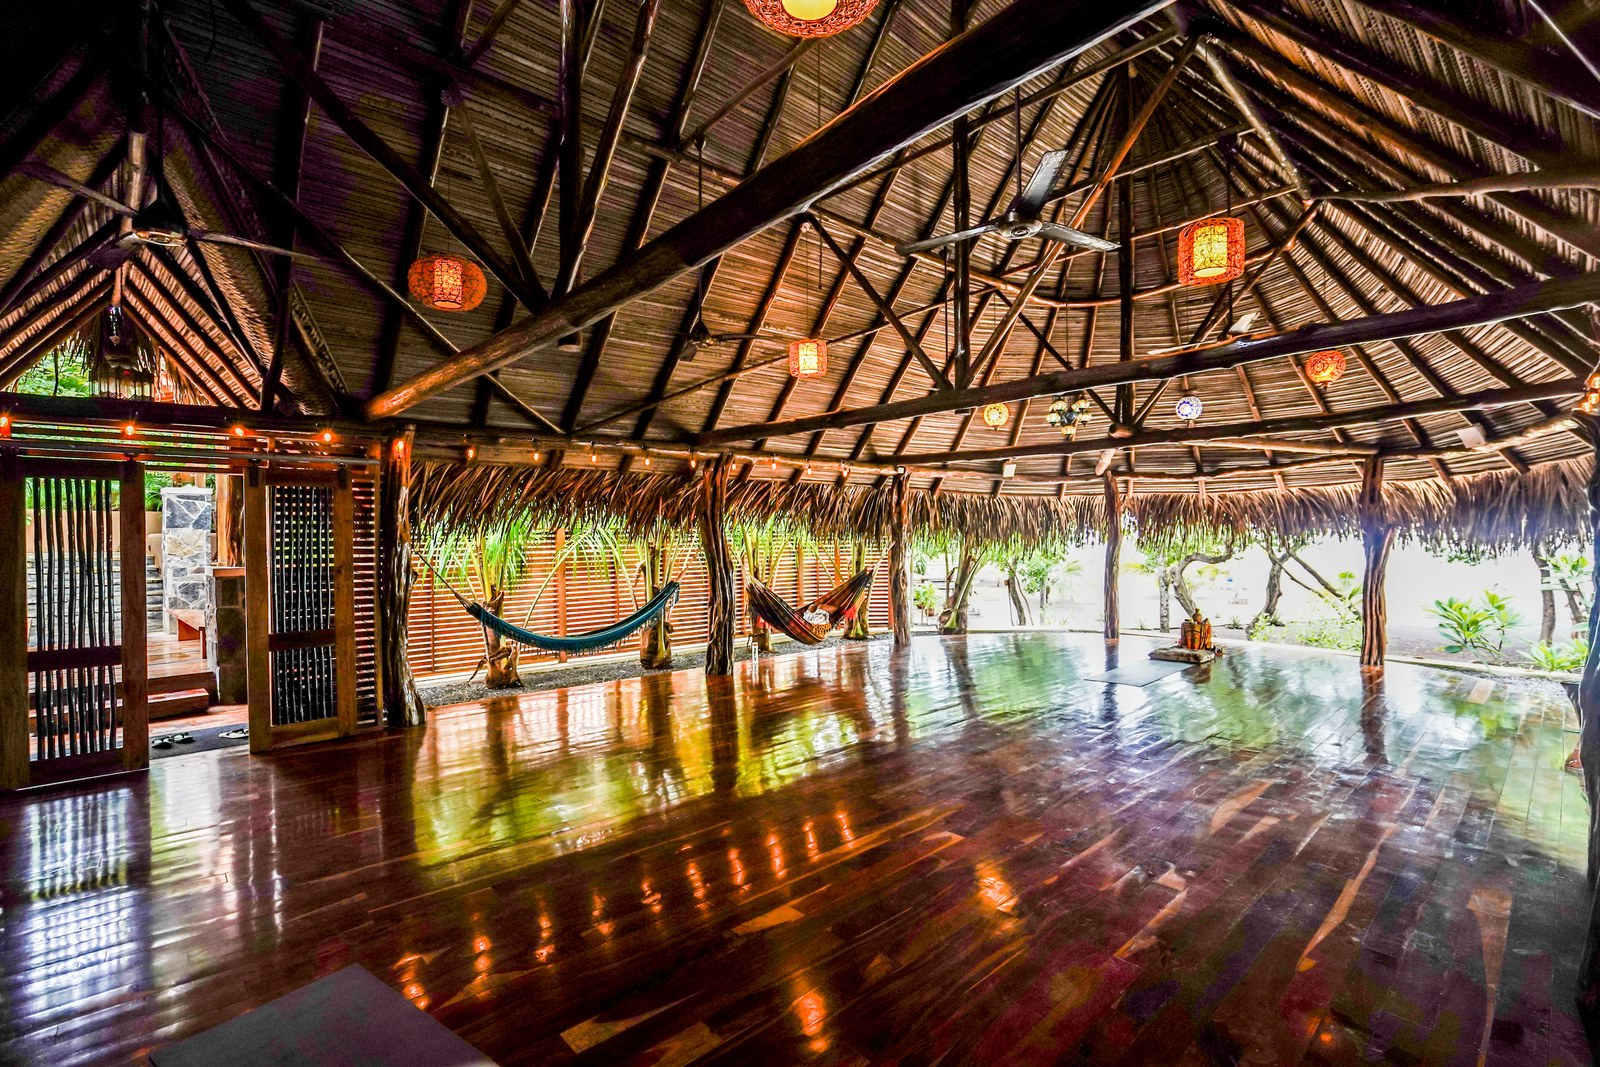 best outdoor yoga retreat's in the world; featured by  Architectural Digest